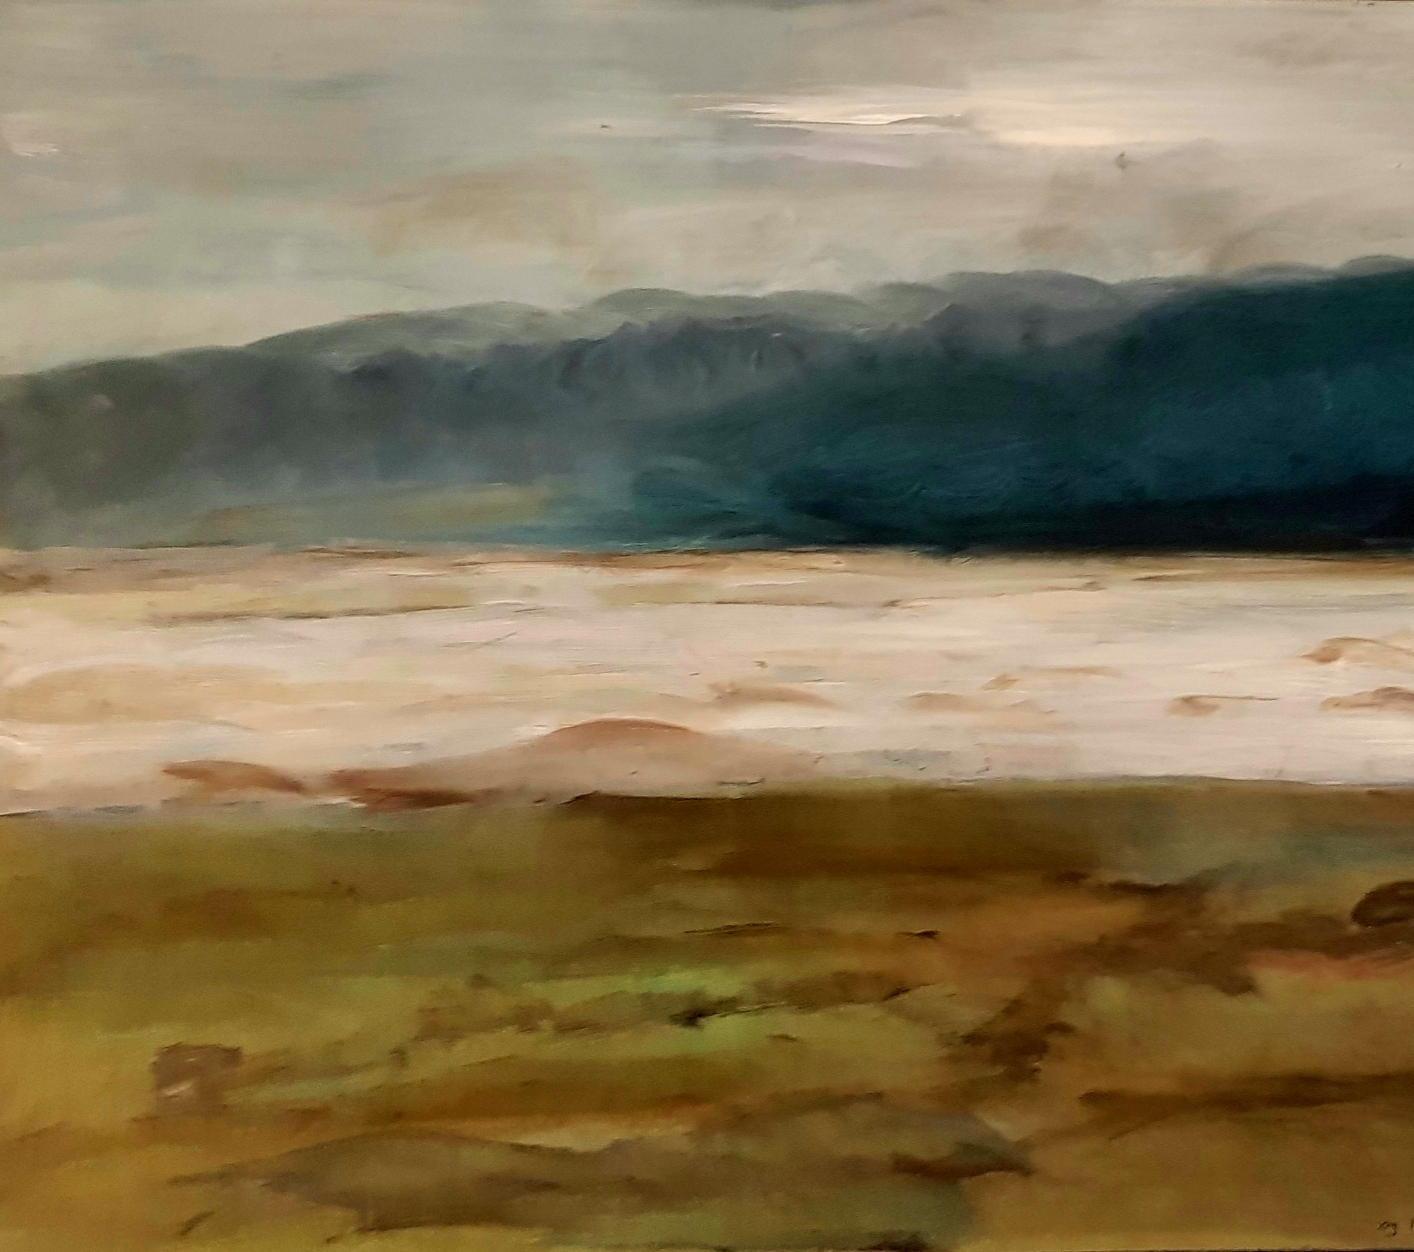 Sky, moutains, sea and land - 100 by 80 cm